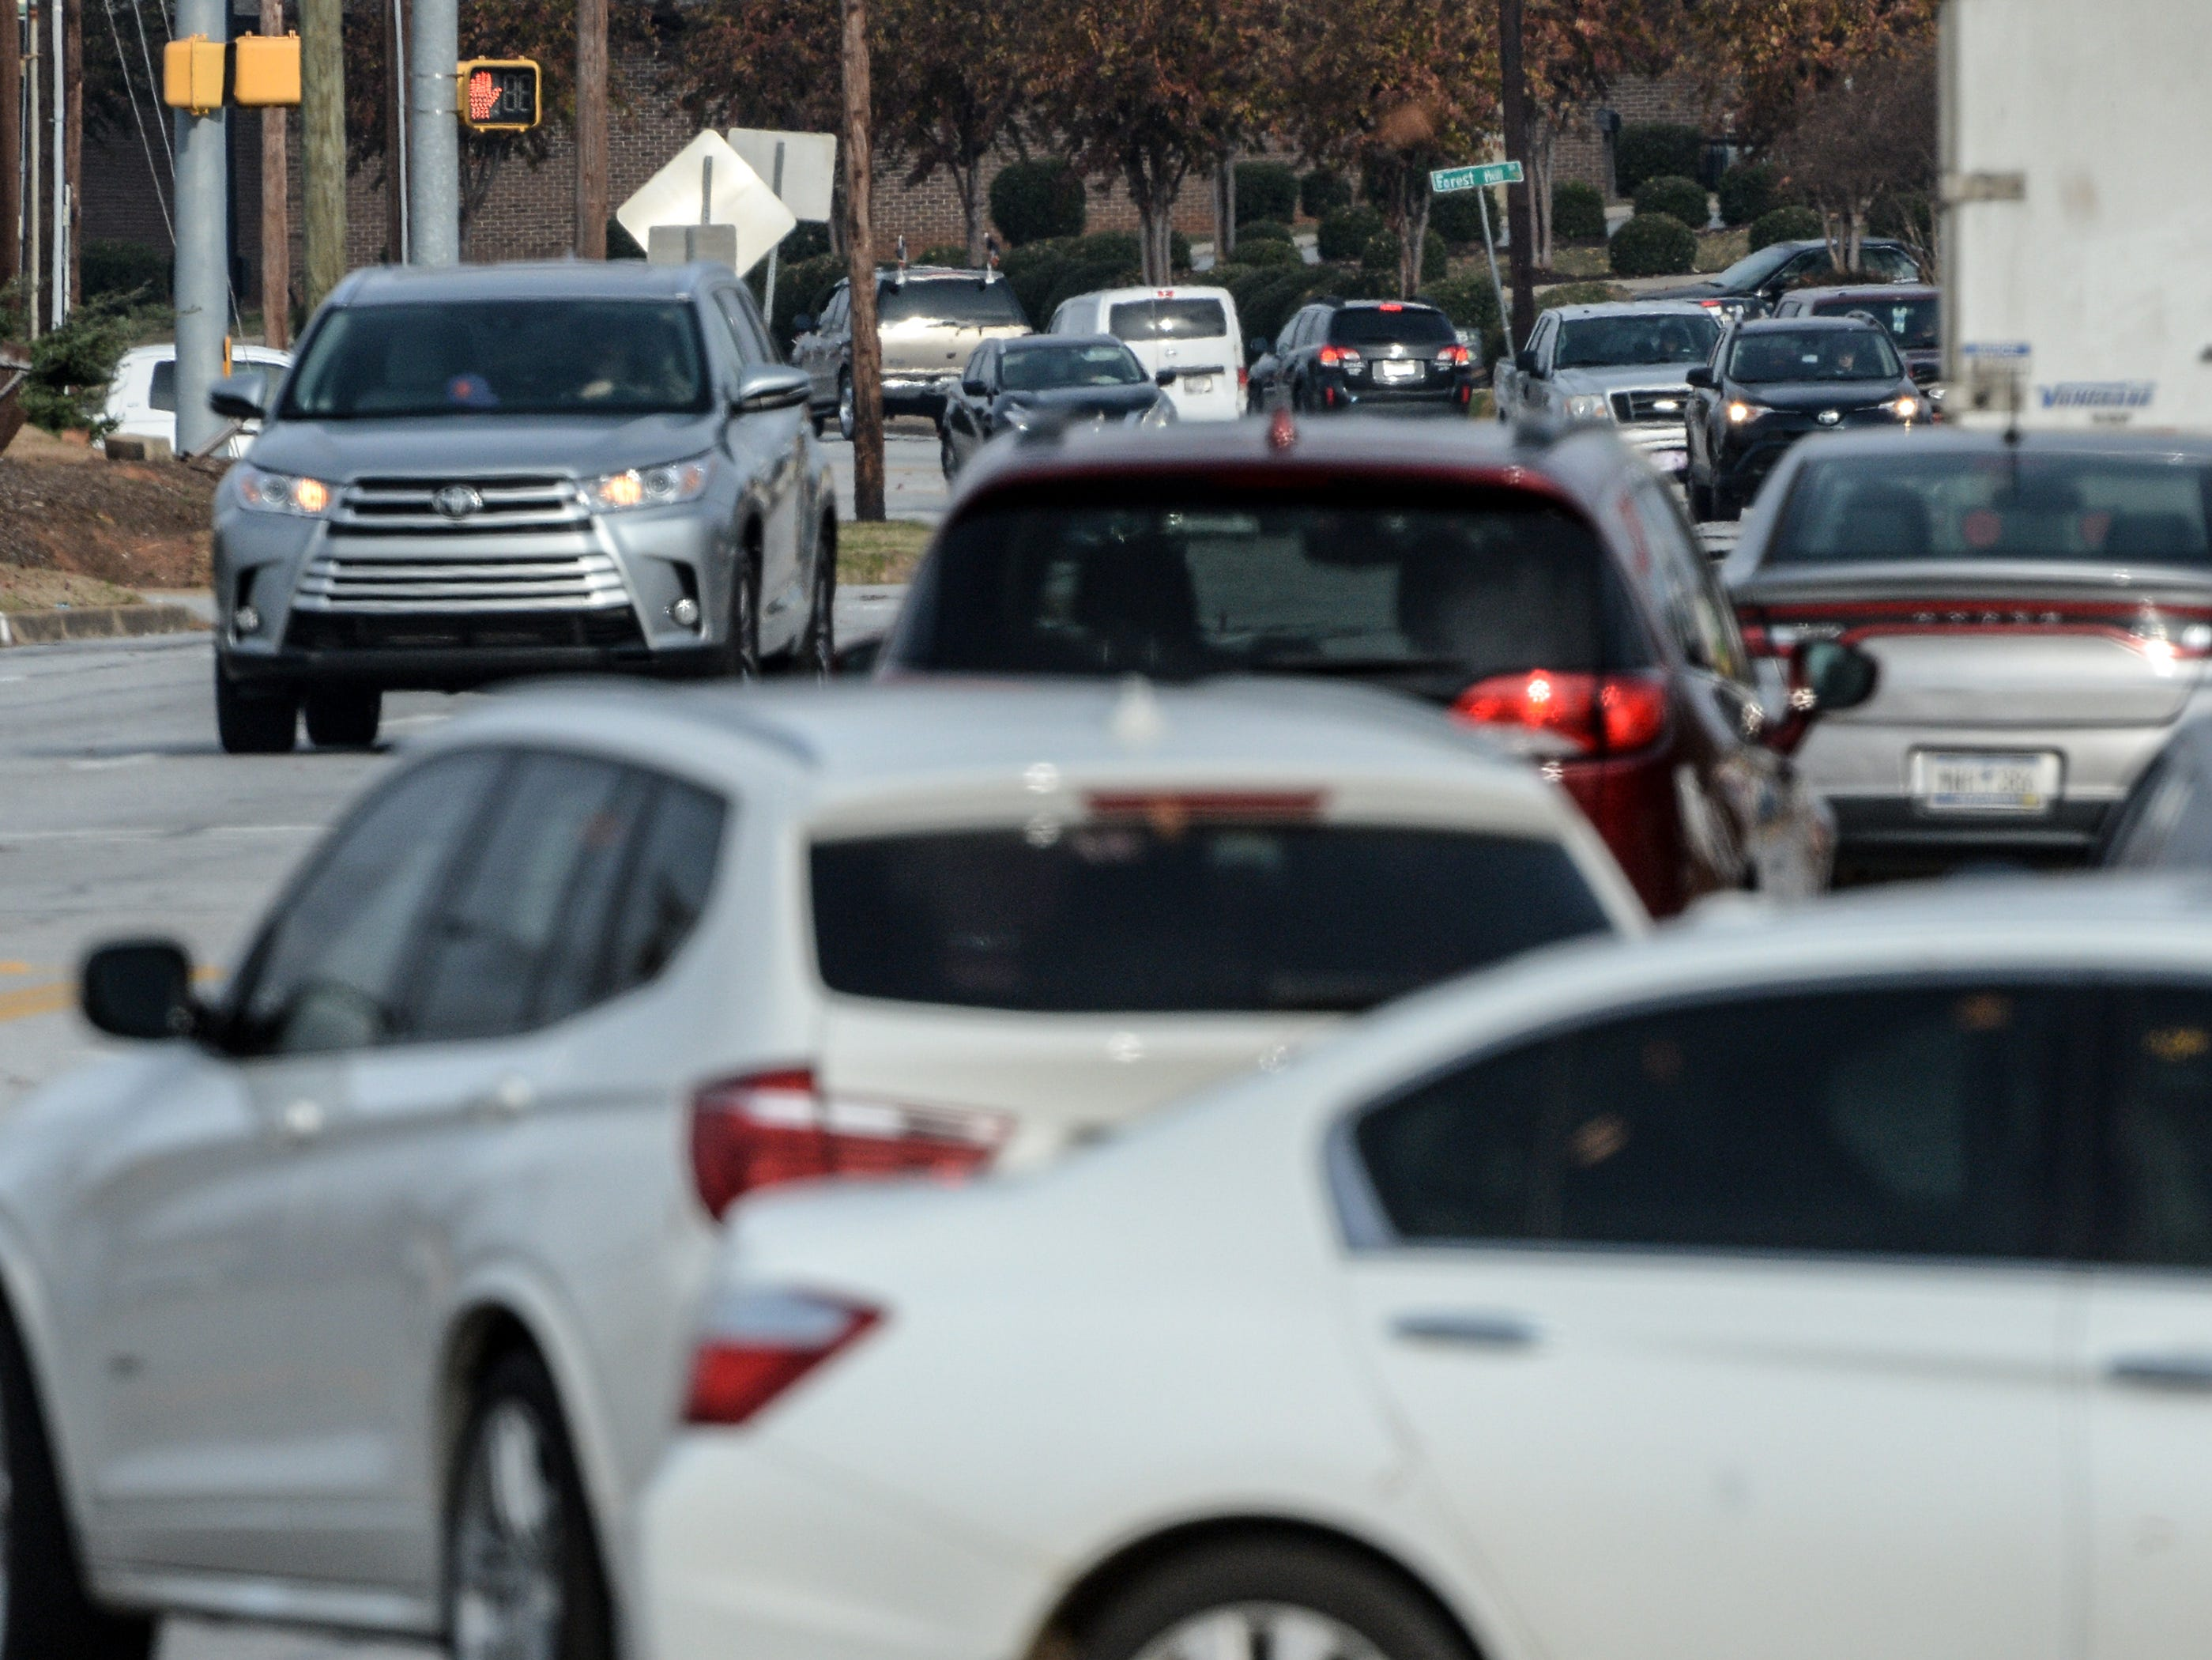 Traffic moves steadily on Clemson Boulevard during Black Friday in Anderson on Friday, November 23, 2018.